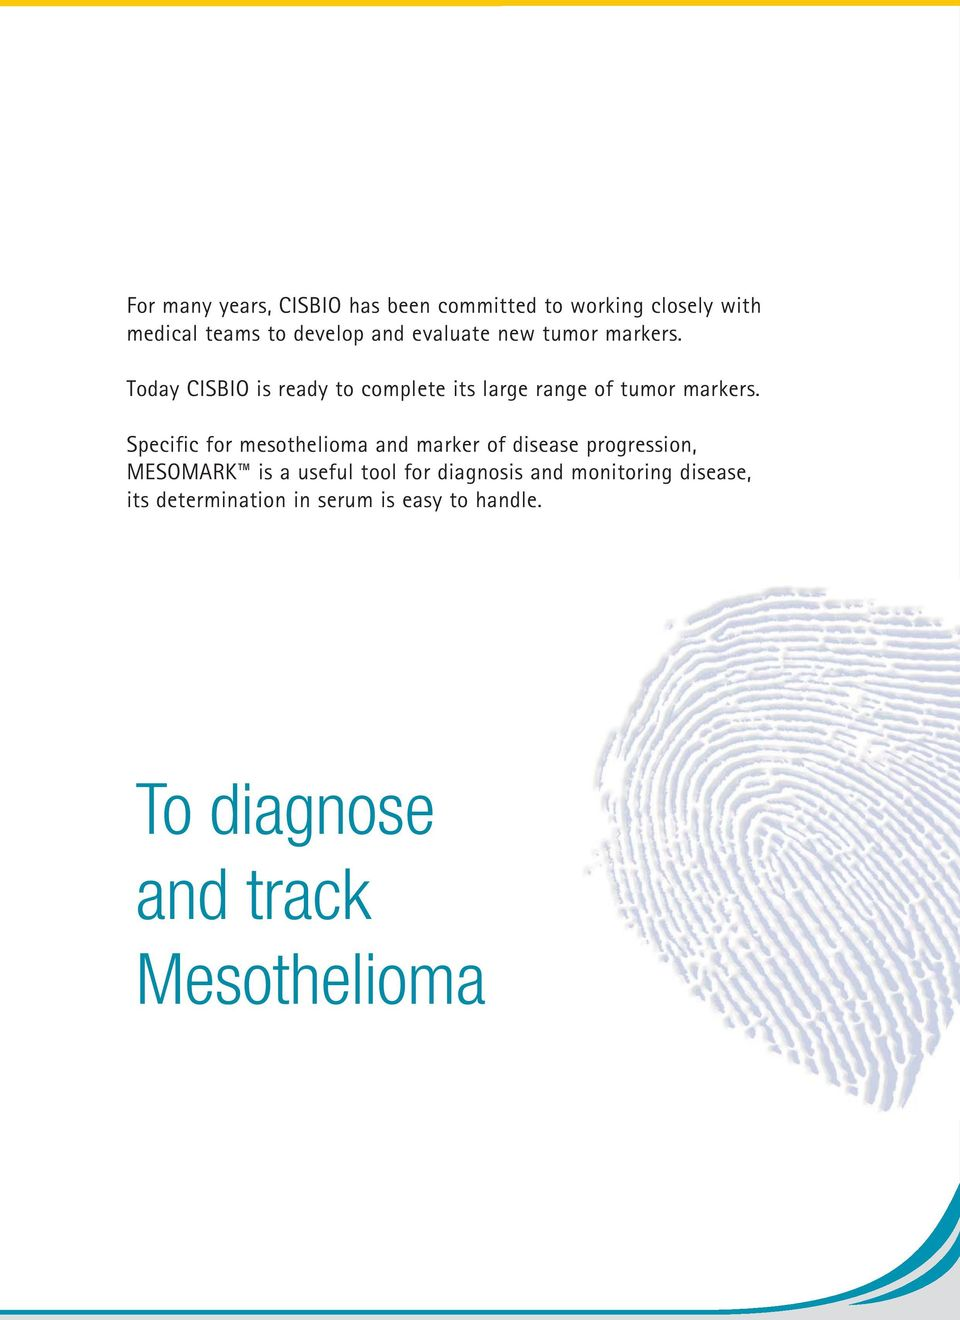 Specific for mesothelioma and marker of disease progression, MESOMARK is a useful tool for